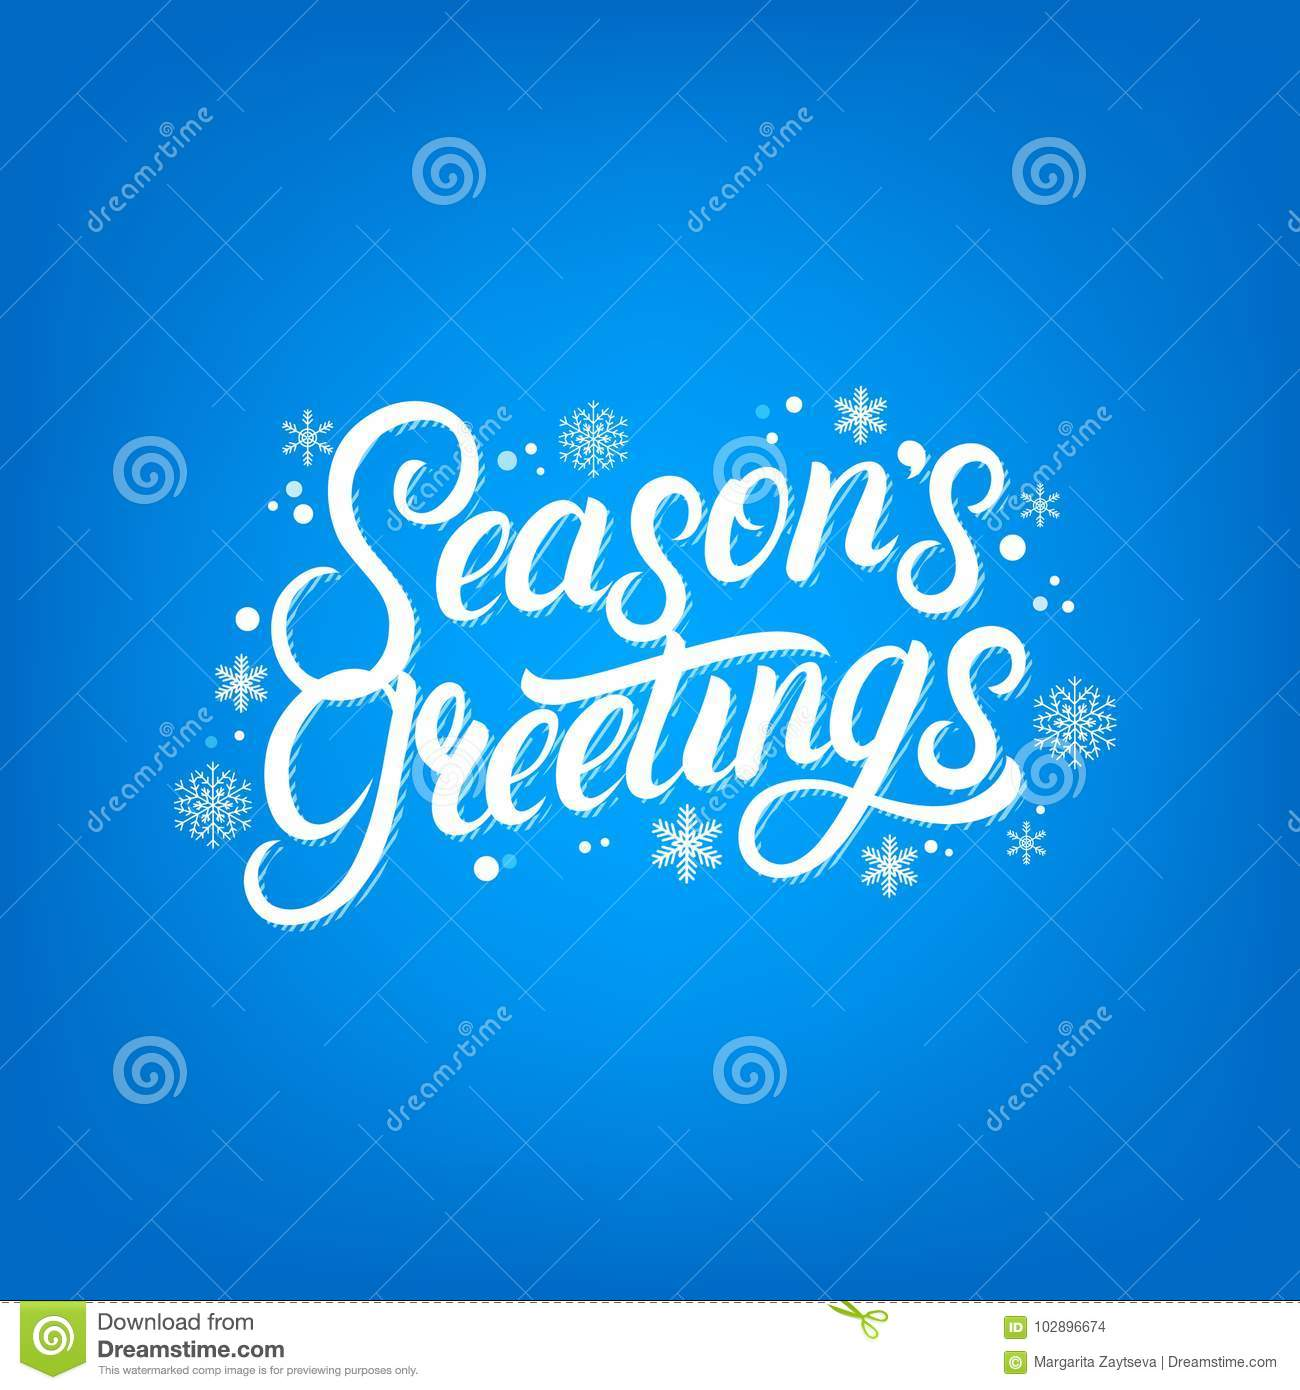 Seasons greetings hand written lettering design stock vector seasons greetings hand written lettering with falling snow and snowflakes christmas inspirational calligraphy quote blue background vector illustration m4hsunfo